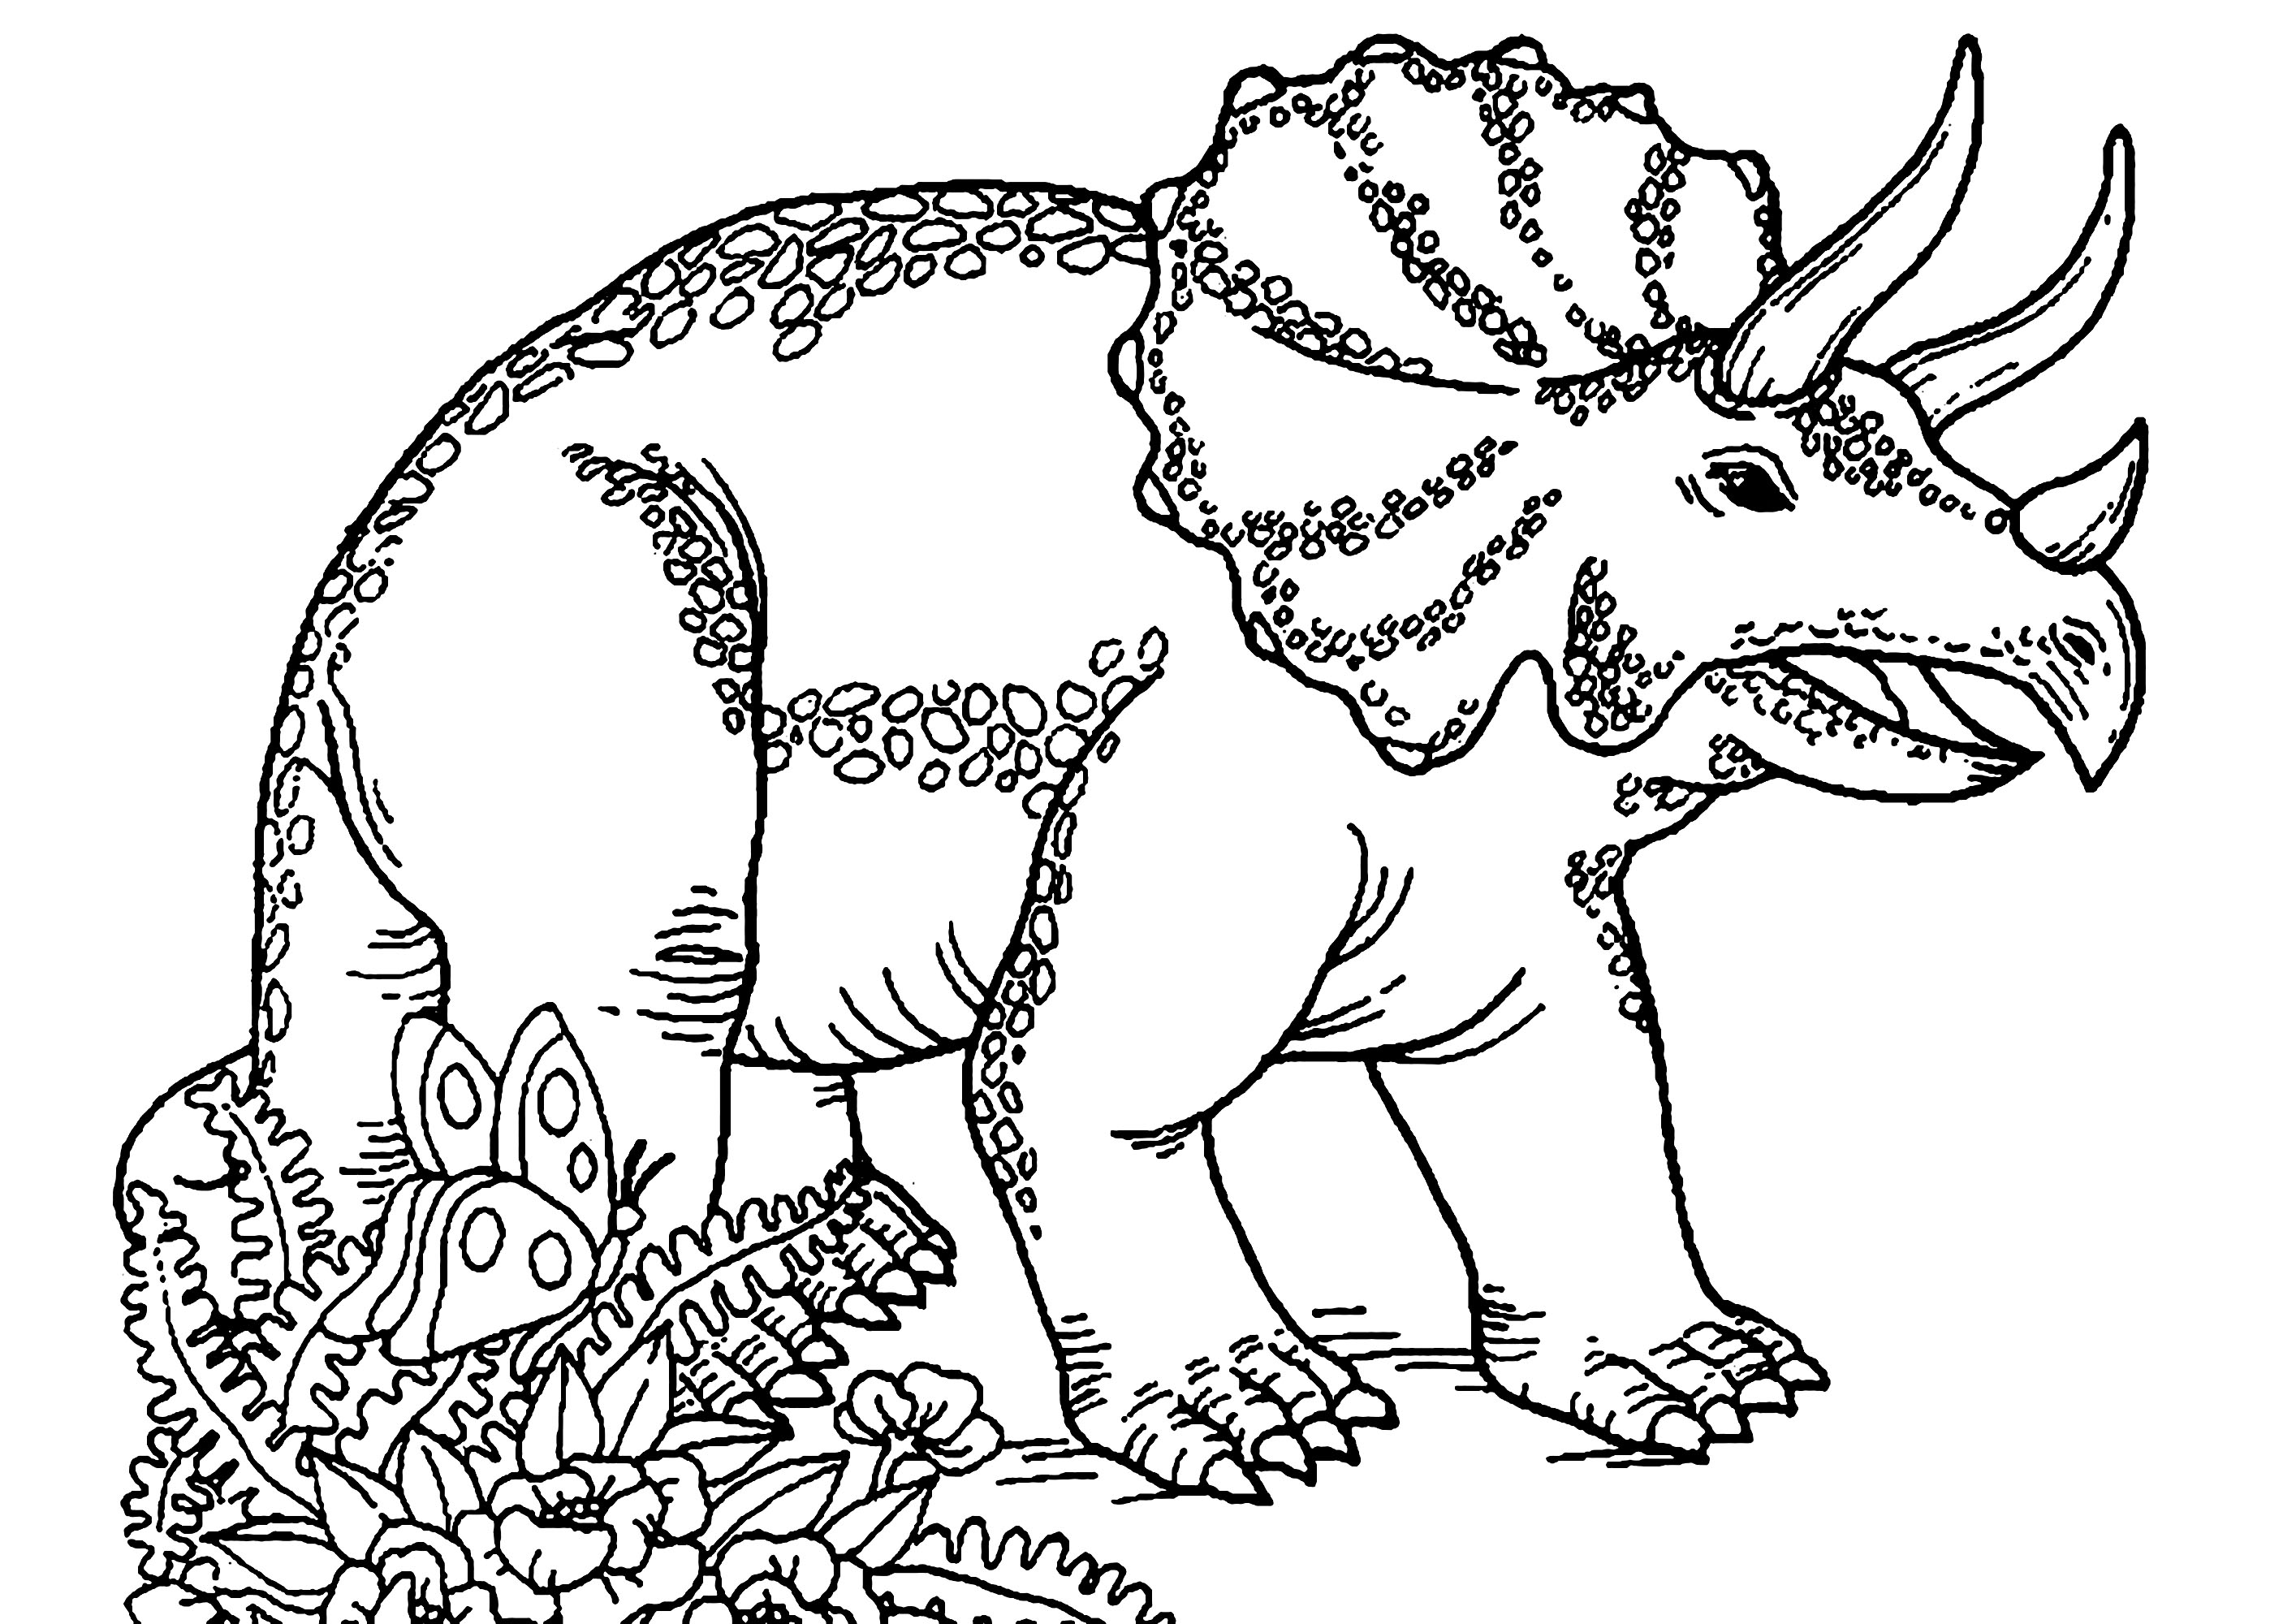 dinosaurs pictures to color coloring pages dinosaur free printable coloring pages color pictures to dinosaurs